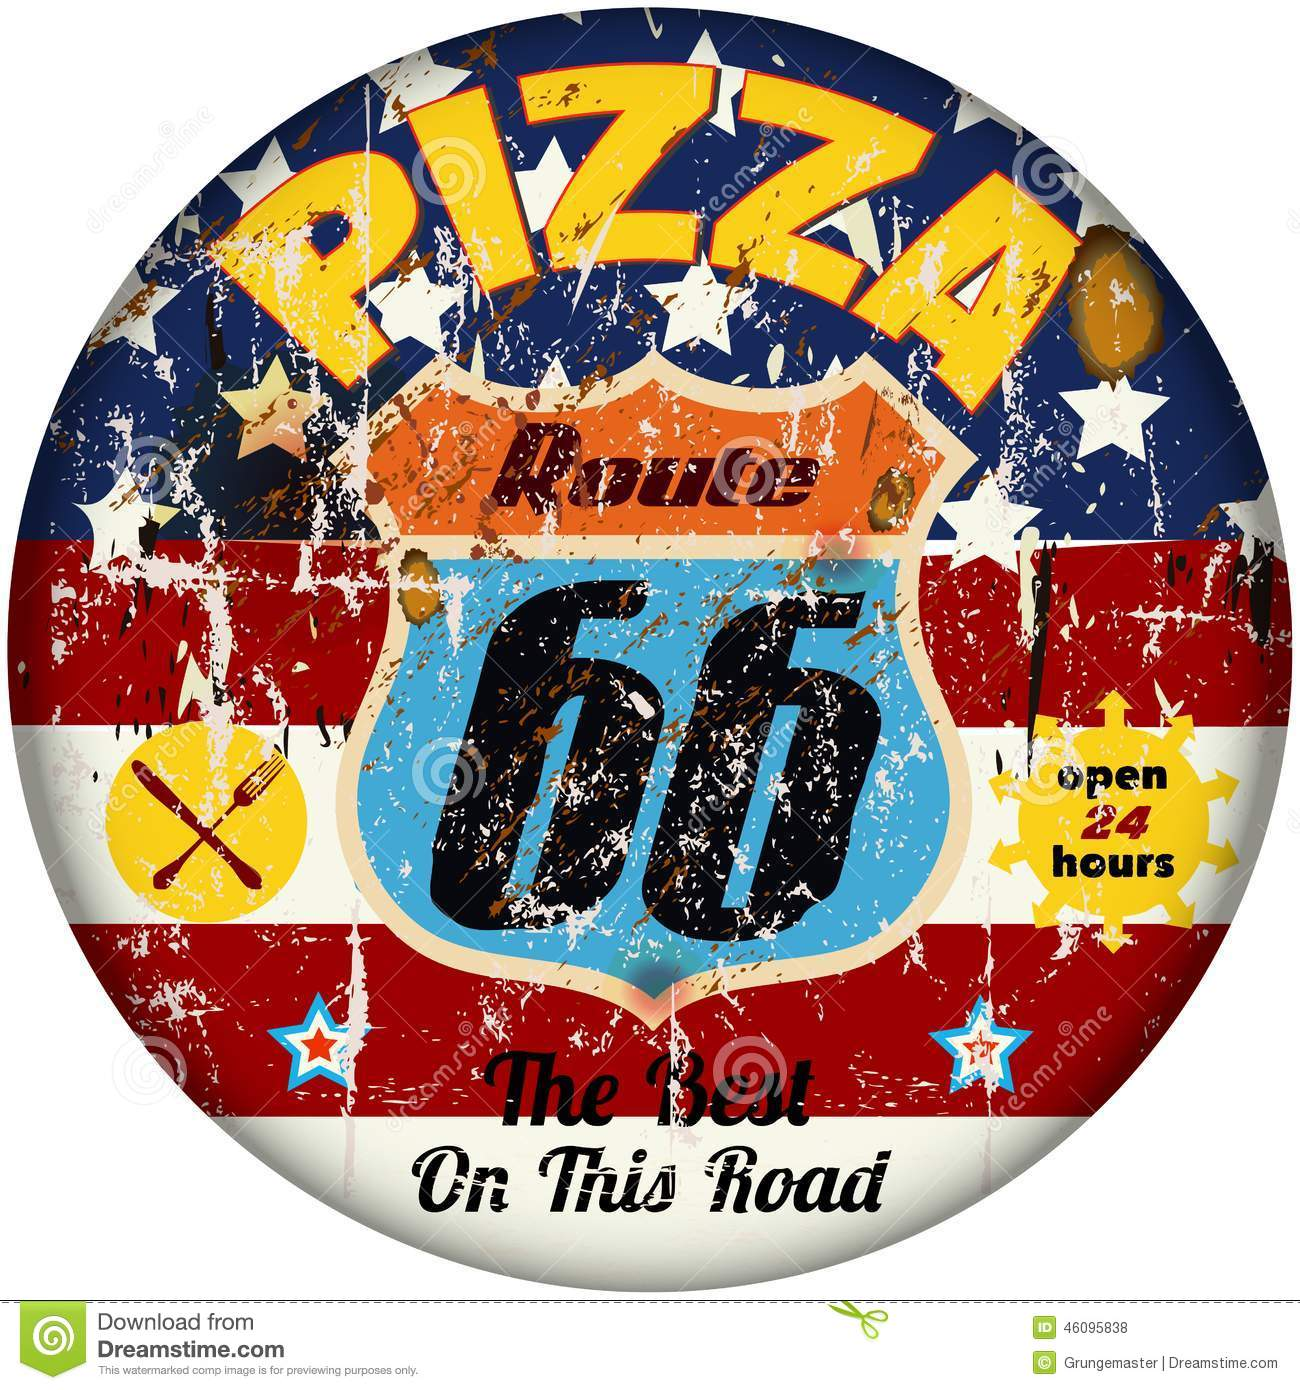 Route 66 pizza sign